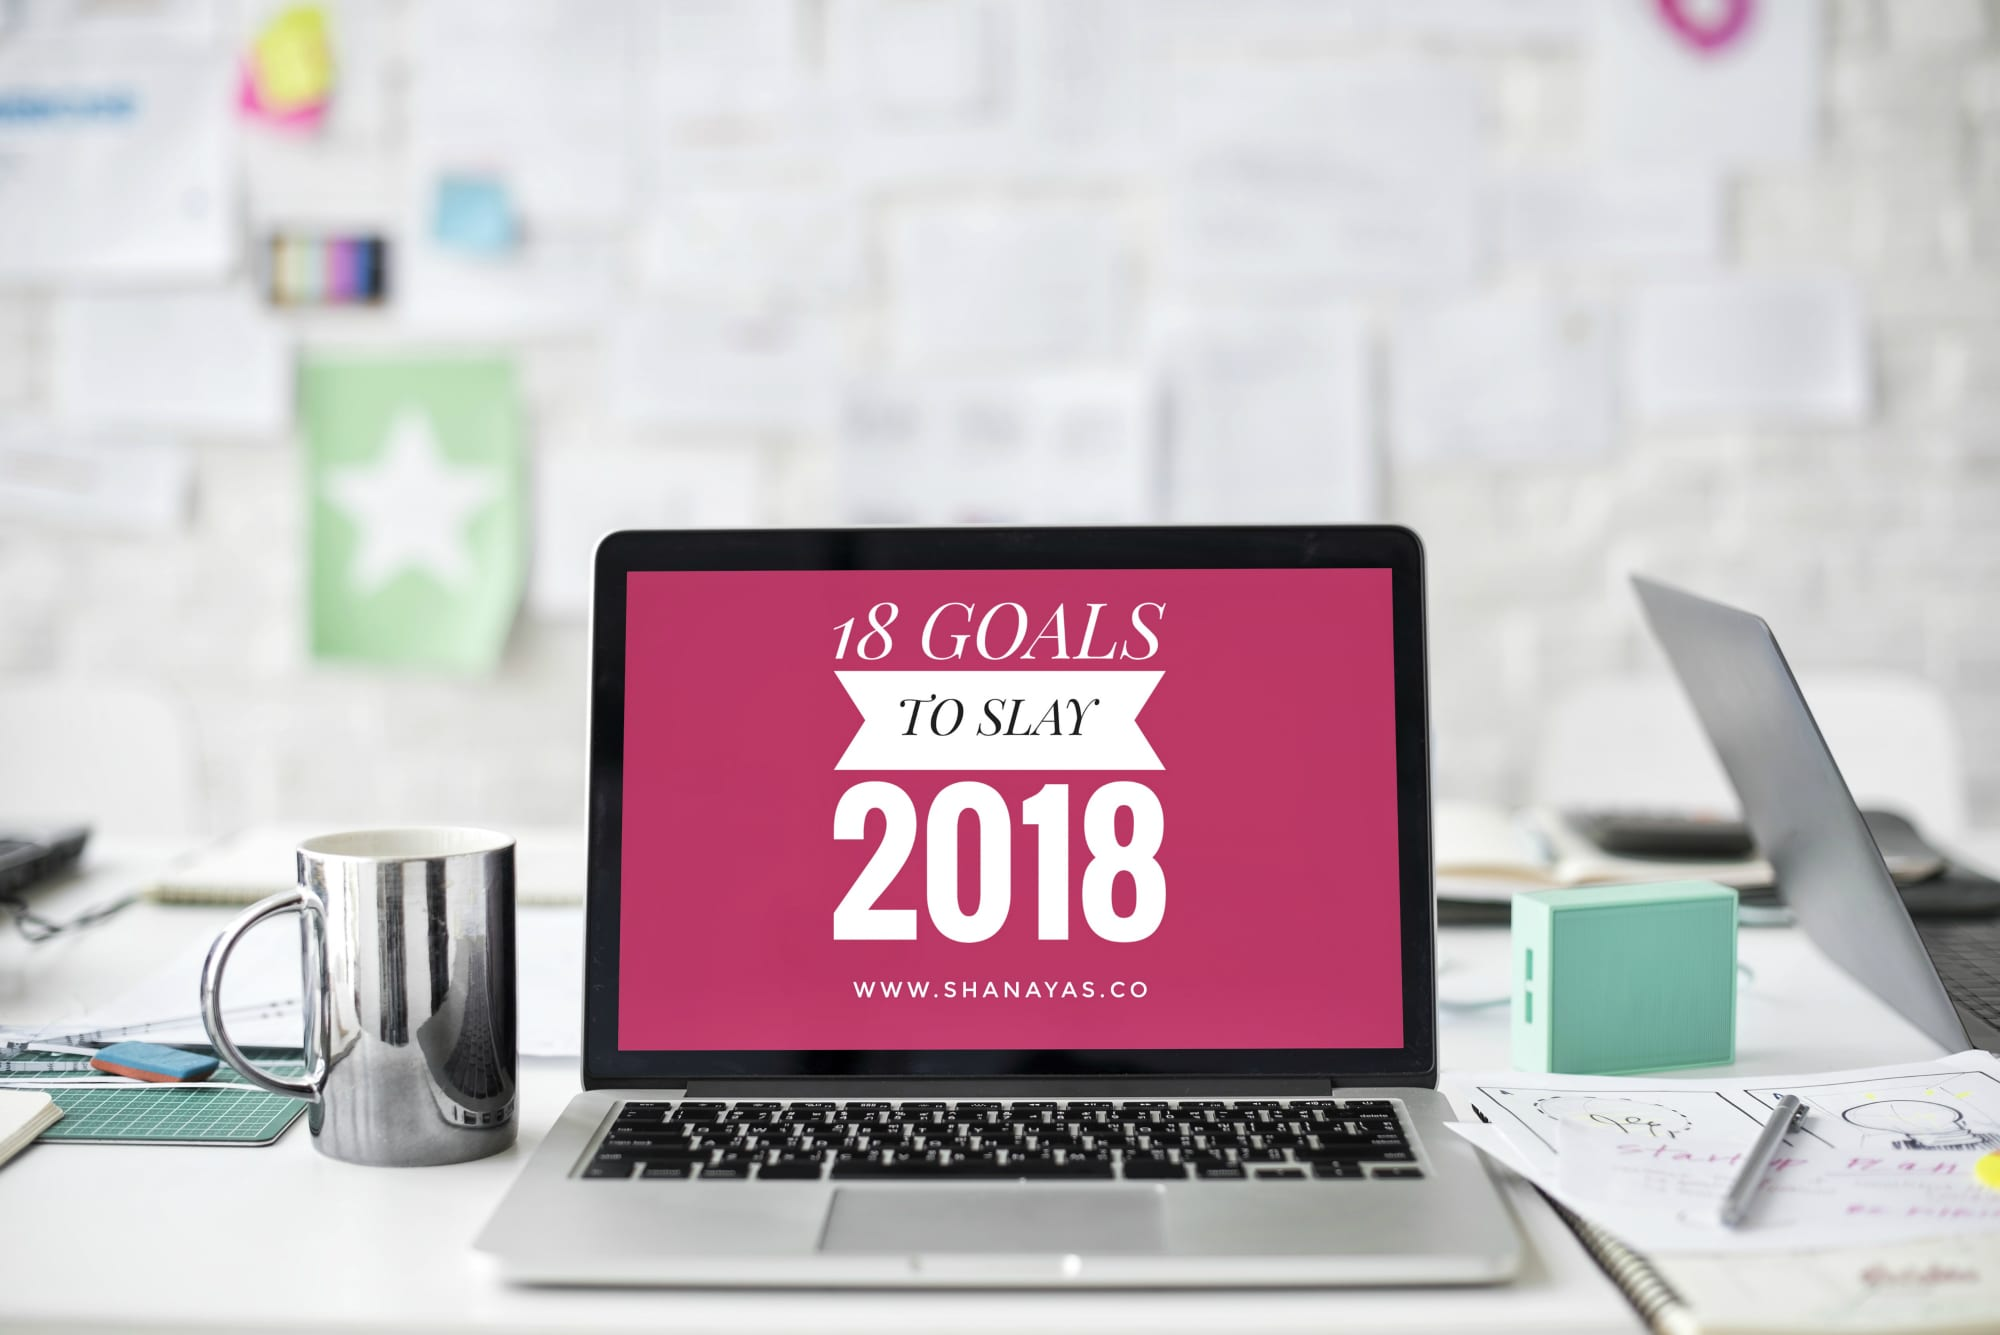 18-Goals-to-Slay-2018- New-years-resolution